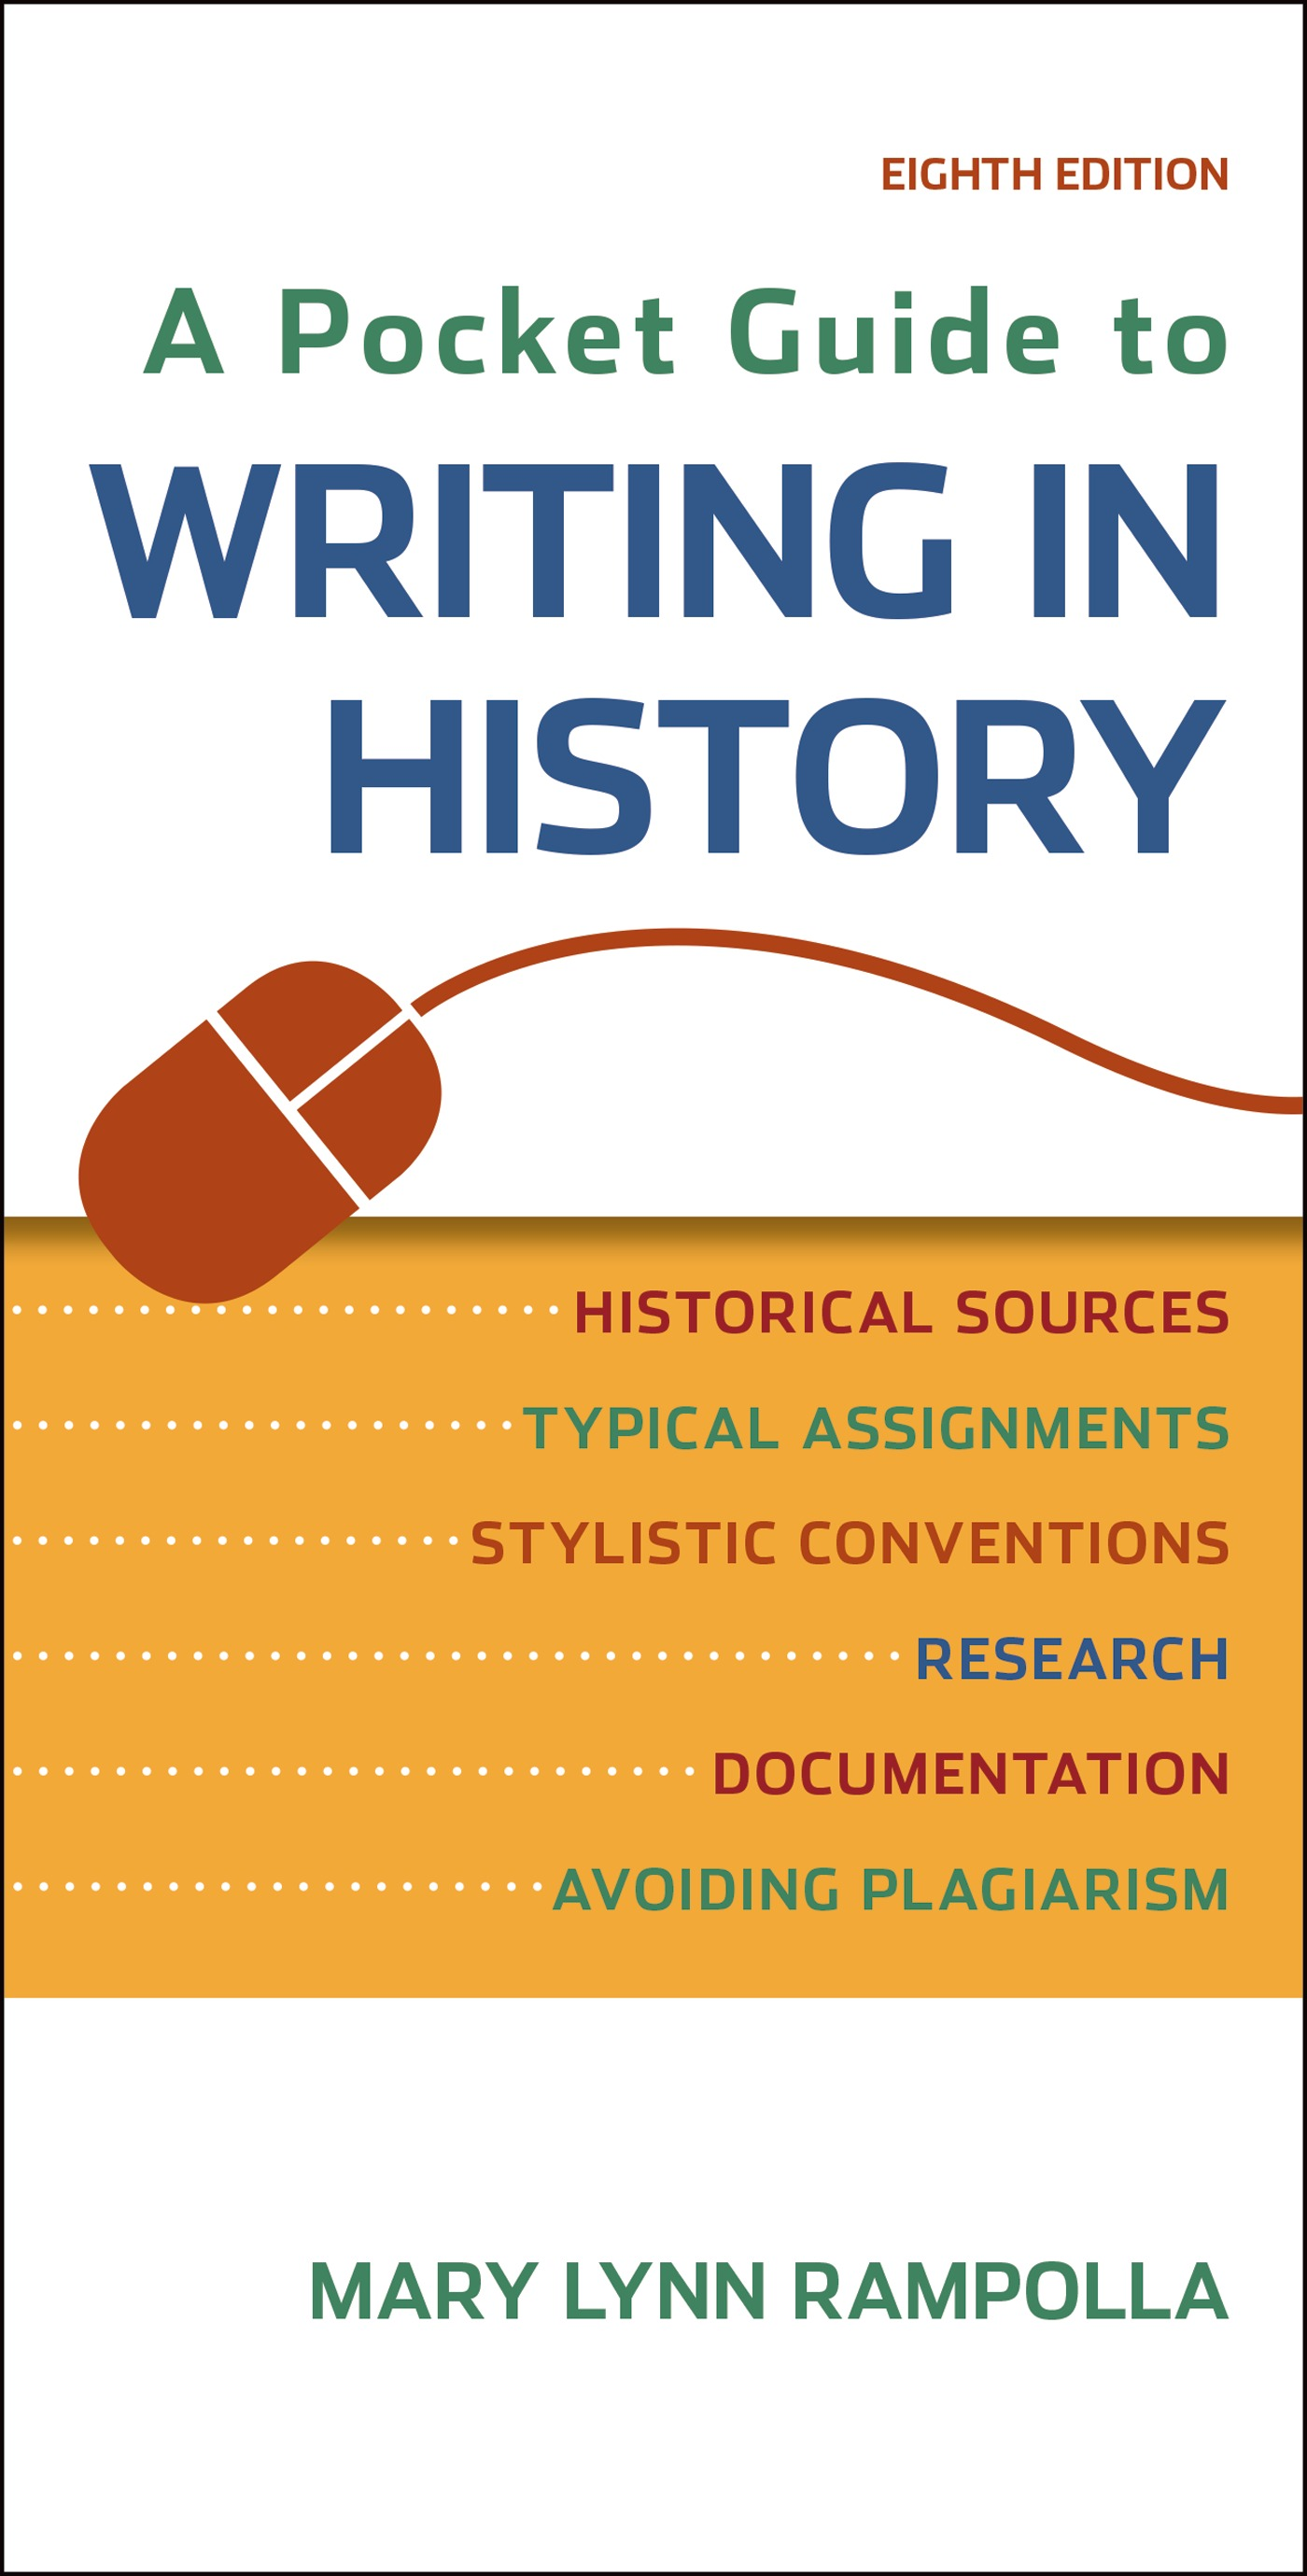 history style guide for writing This guide addresses some of the most common questions related to researching, writing, and formatting a history research paper it provides visual examples for the main stages of the.